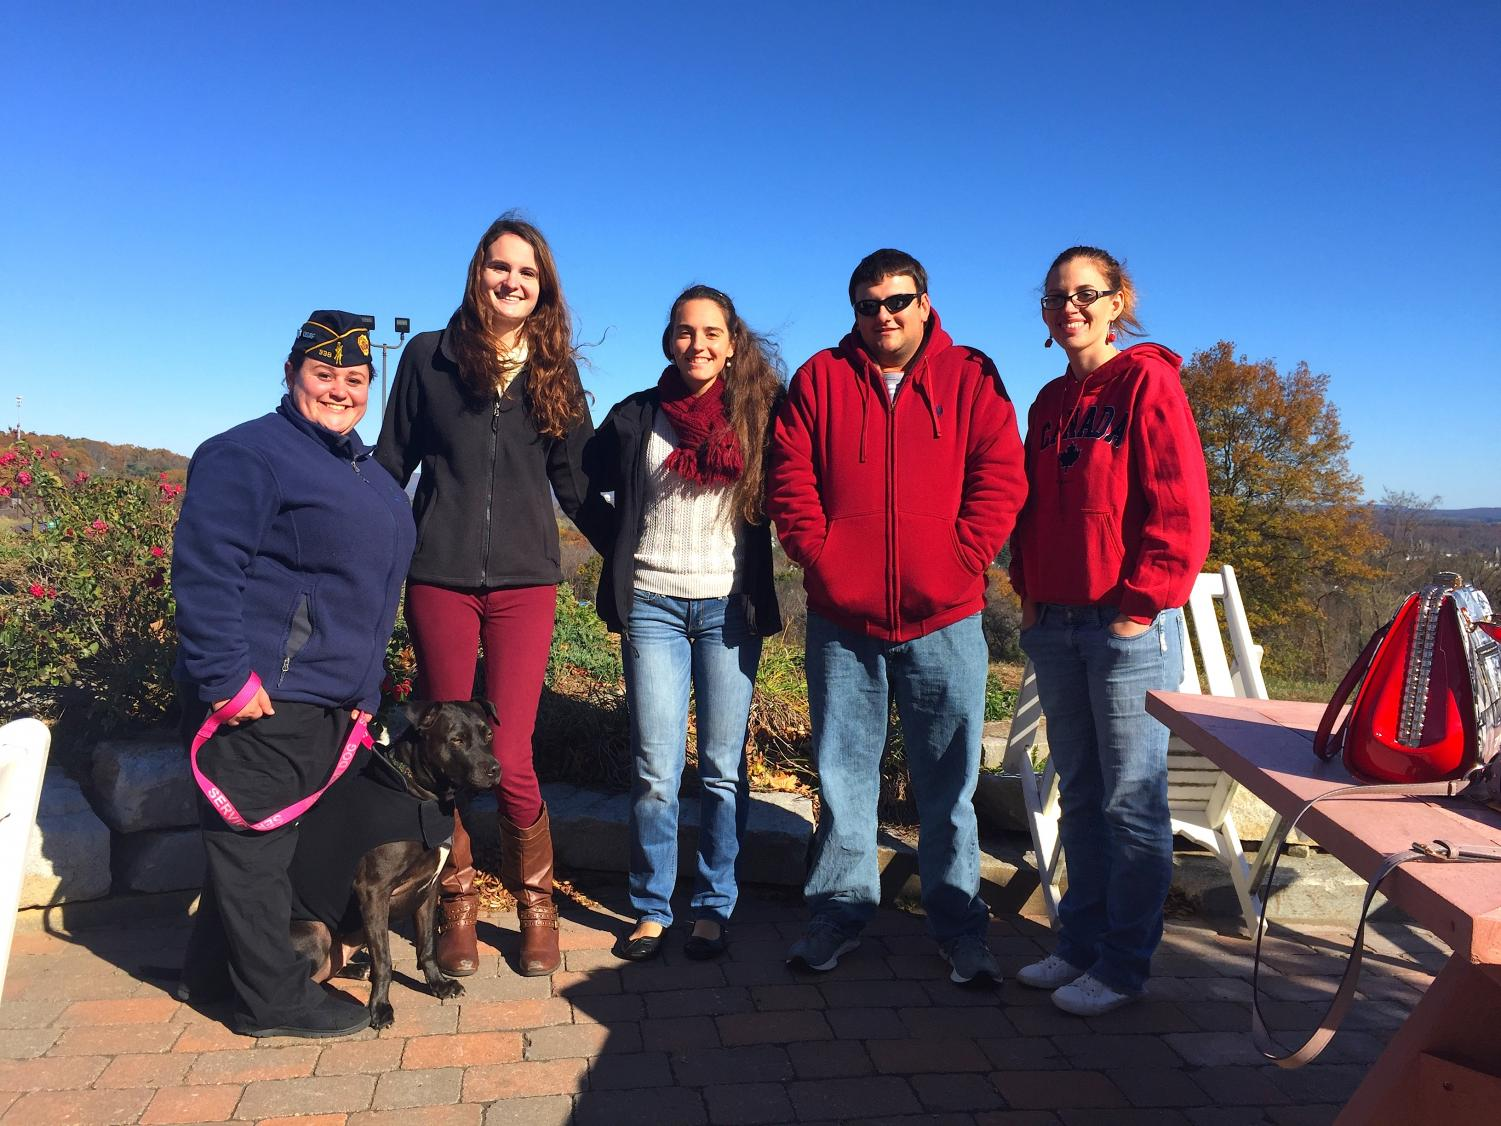 L-R: Alyssa Reardon (U.S. Air Force Veteran & President of the AIC Armed Forces Club) and service dog MJ, Allison Gavin (President of the AIC Lion's Club), Jennifer Fannon (Member of the AIC Lion's Club), Robby Ollari (Editor of the YJ), Janelle Fried (Treasurer of the AIC Lion's Club) at the Soldiers' Home in Holyoke, Mass.